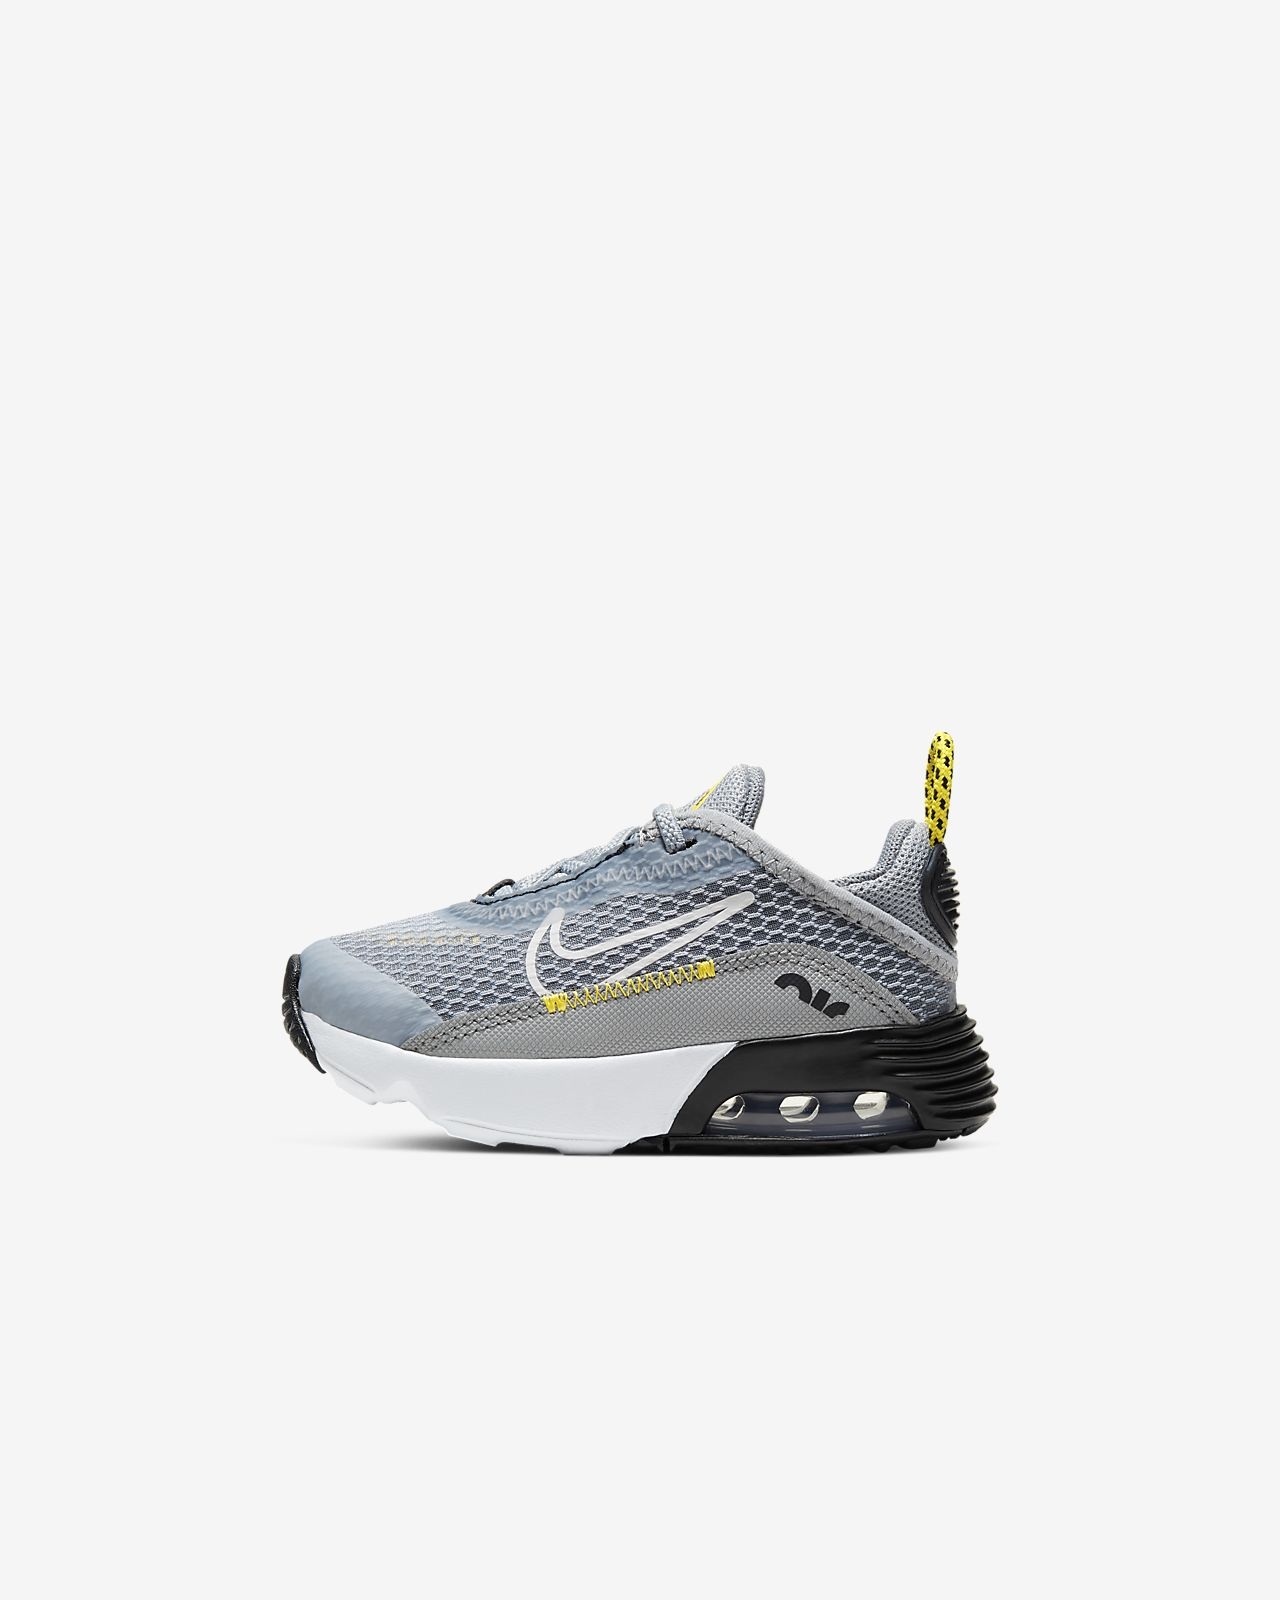 Nike Air Max 2090 Baby/Toddler Shoe